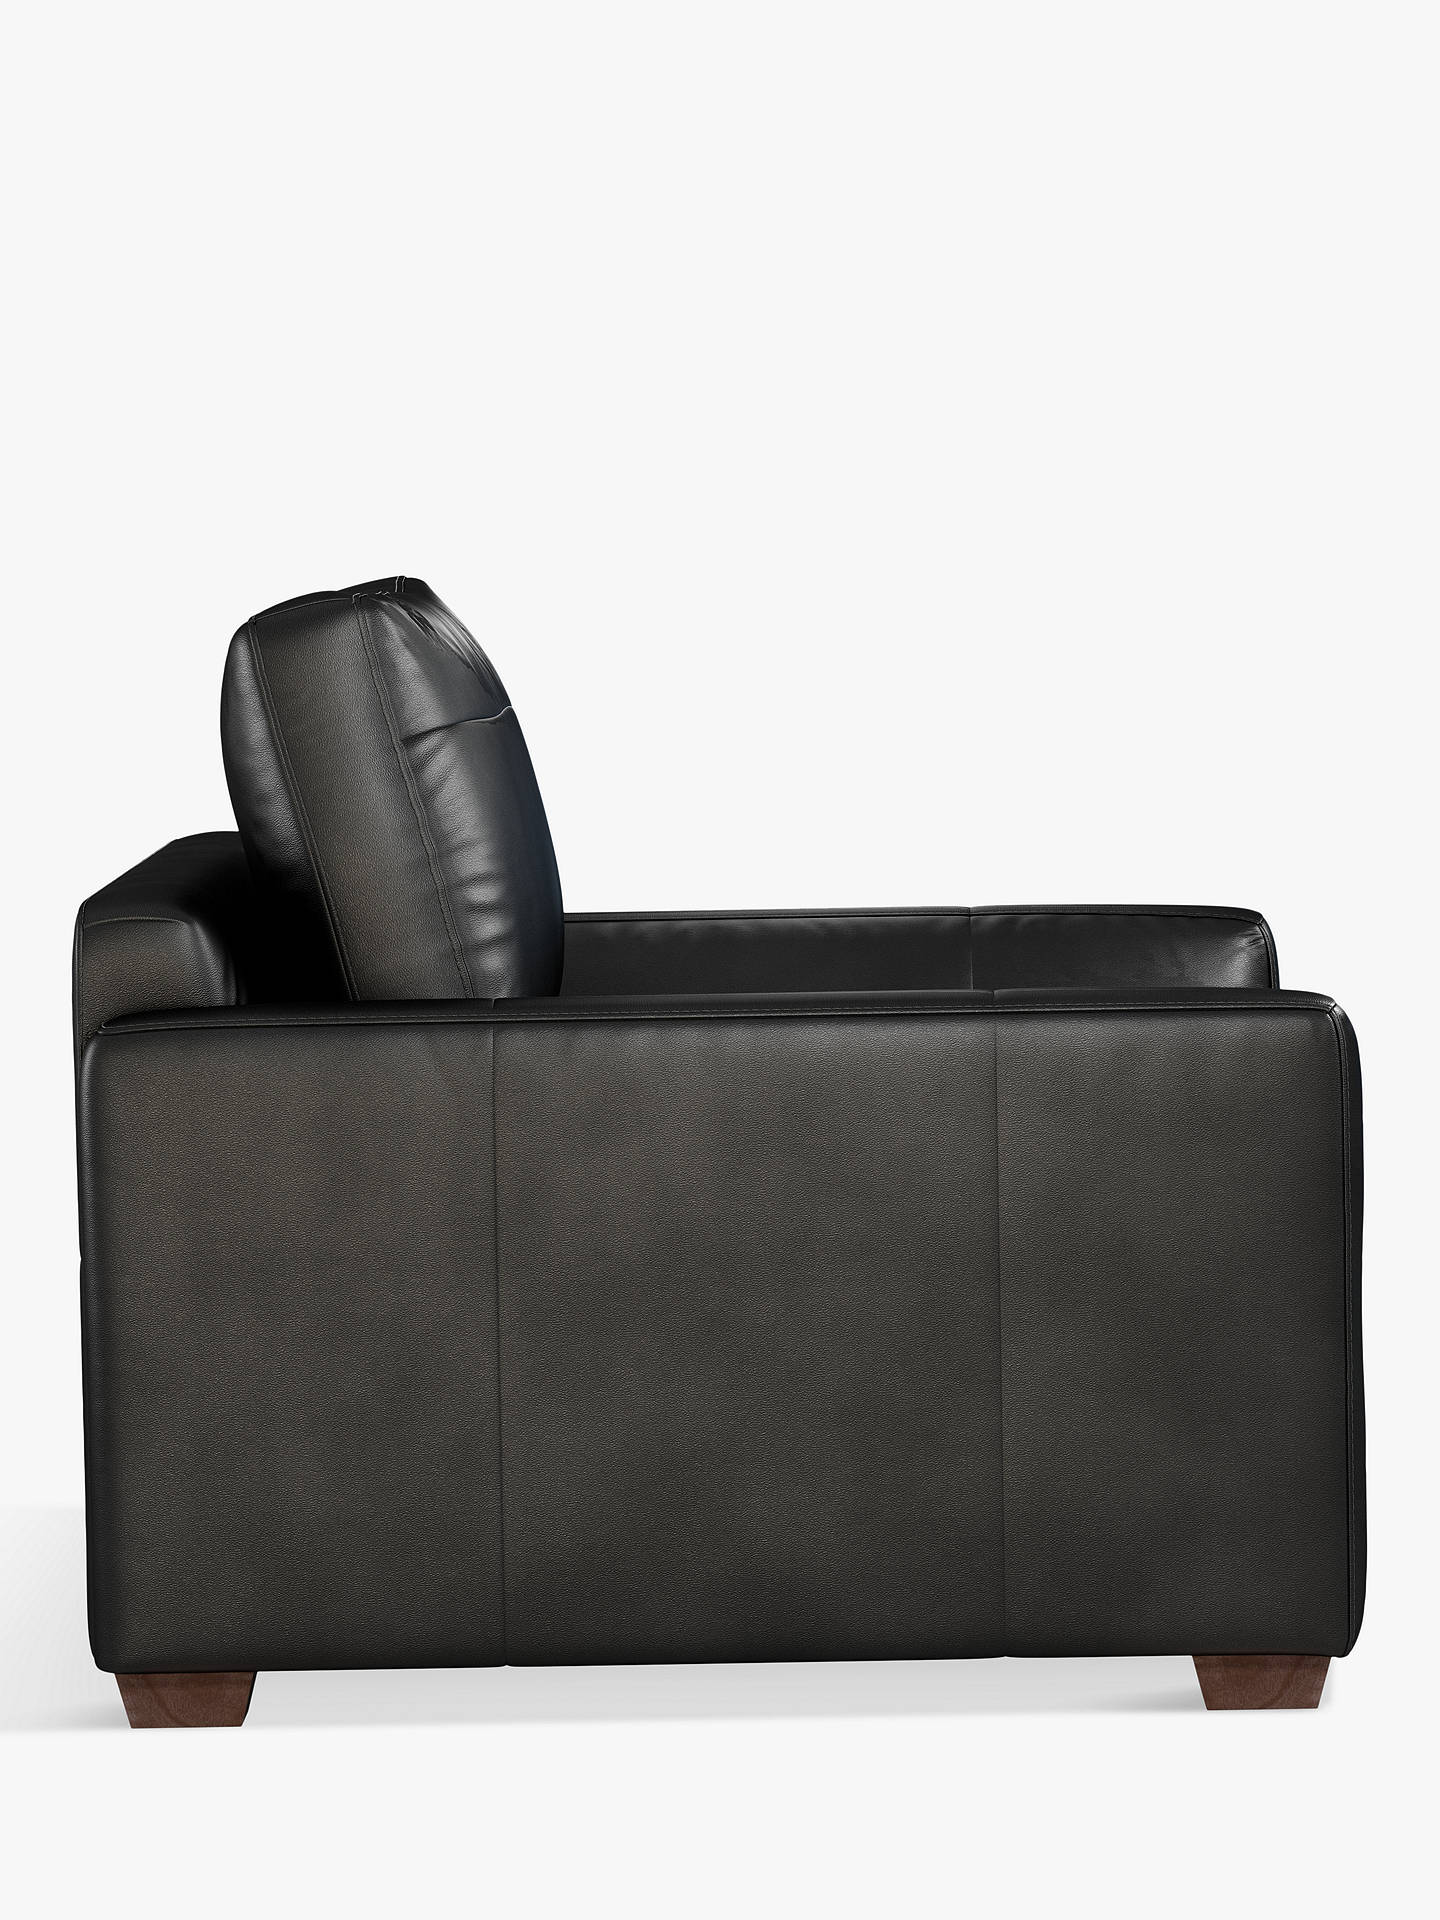 Buy John Lewis & Partners Tortona Leather Snuggler, Contempo Black Online at johnlewis.com